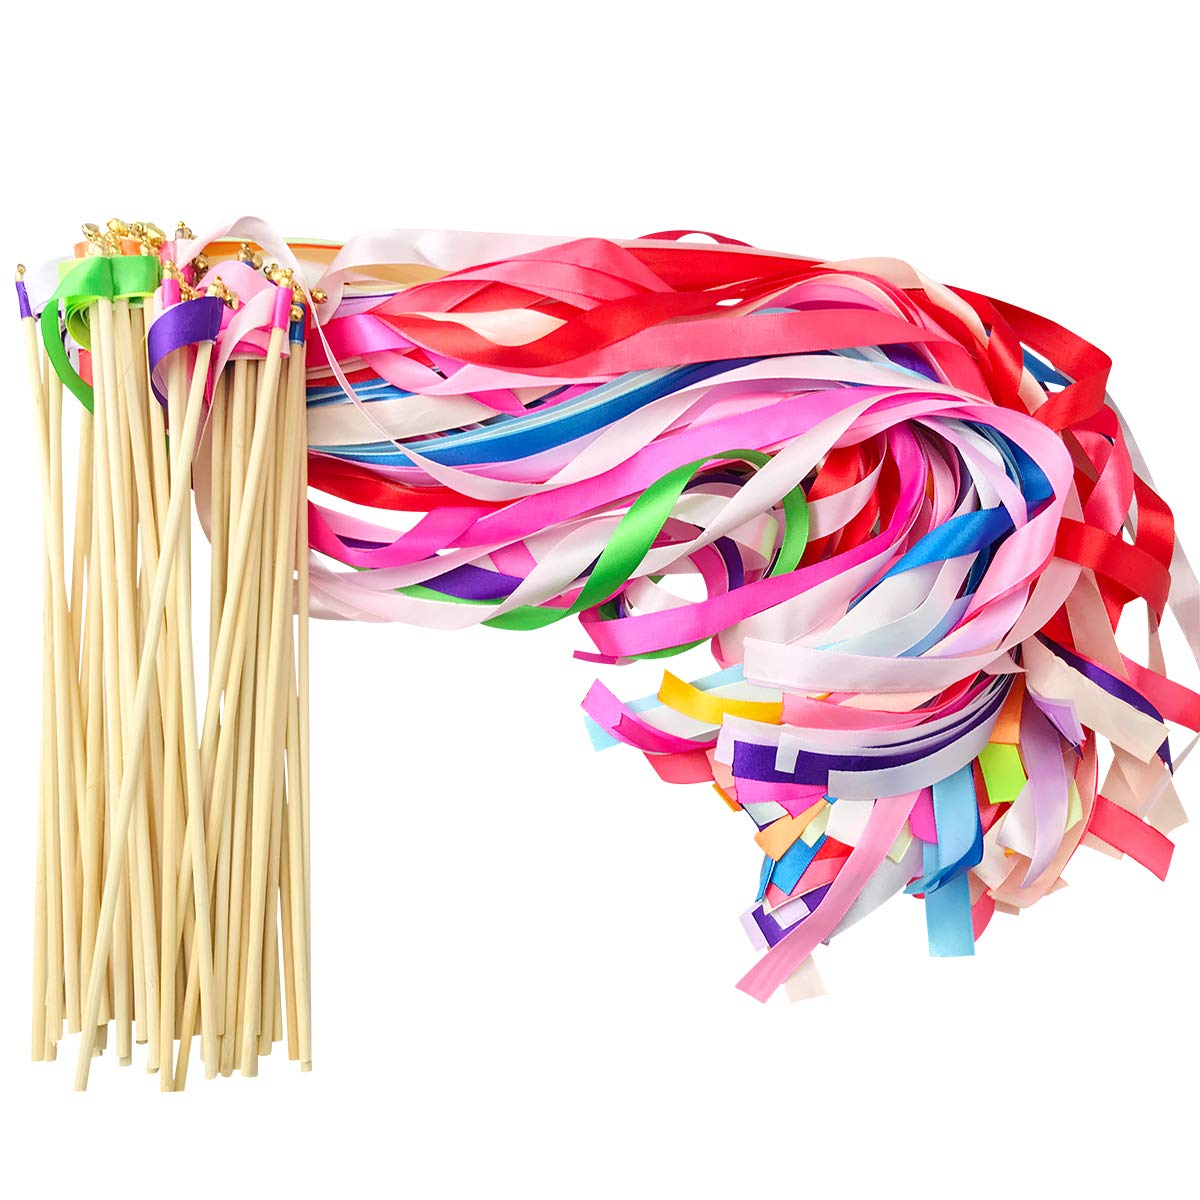 Cieovo 50 Pack Ribbon Fairy Wands Mix Color Chromatic Silk Streamers with Bells Fairy Stick Wish Wands for Wedding Holiday Celebration Kids Birthday Party Activities